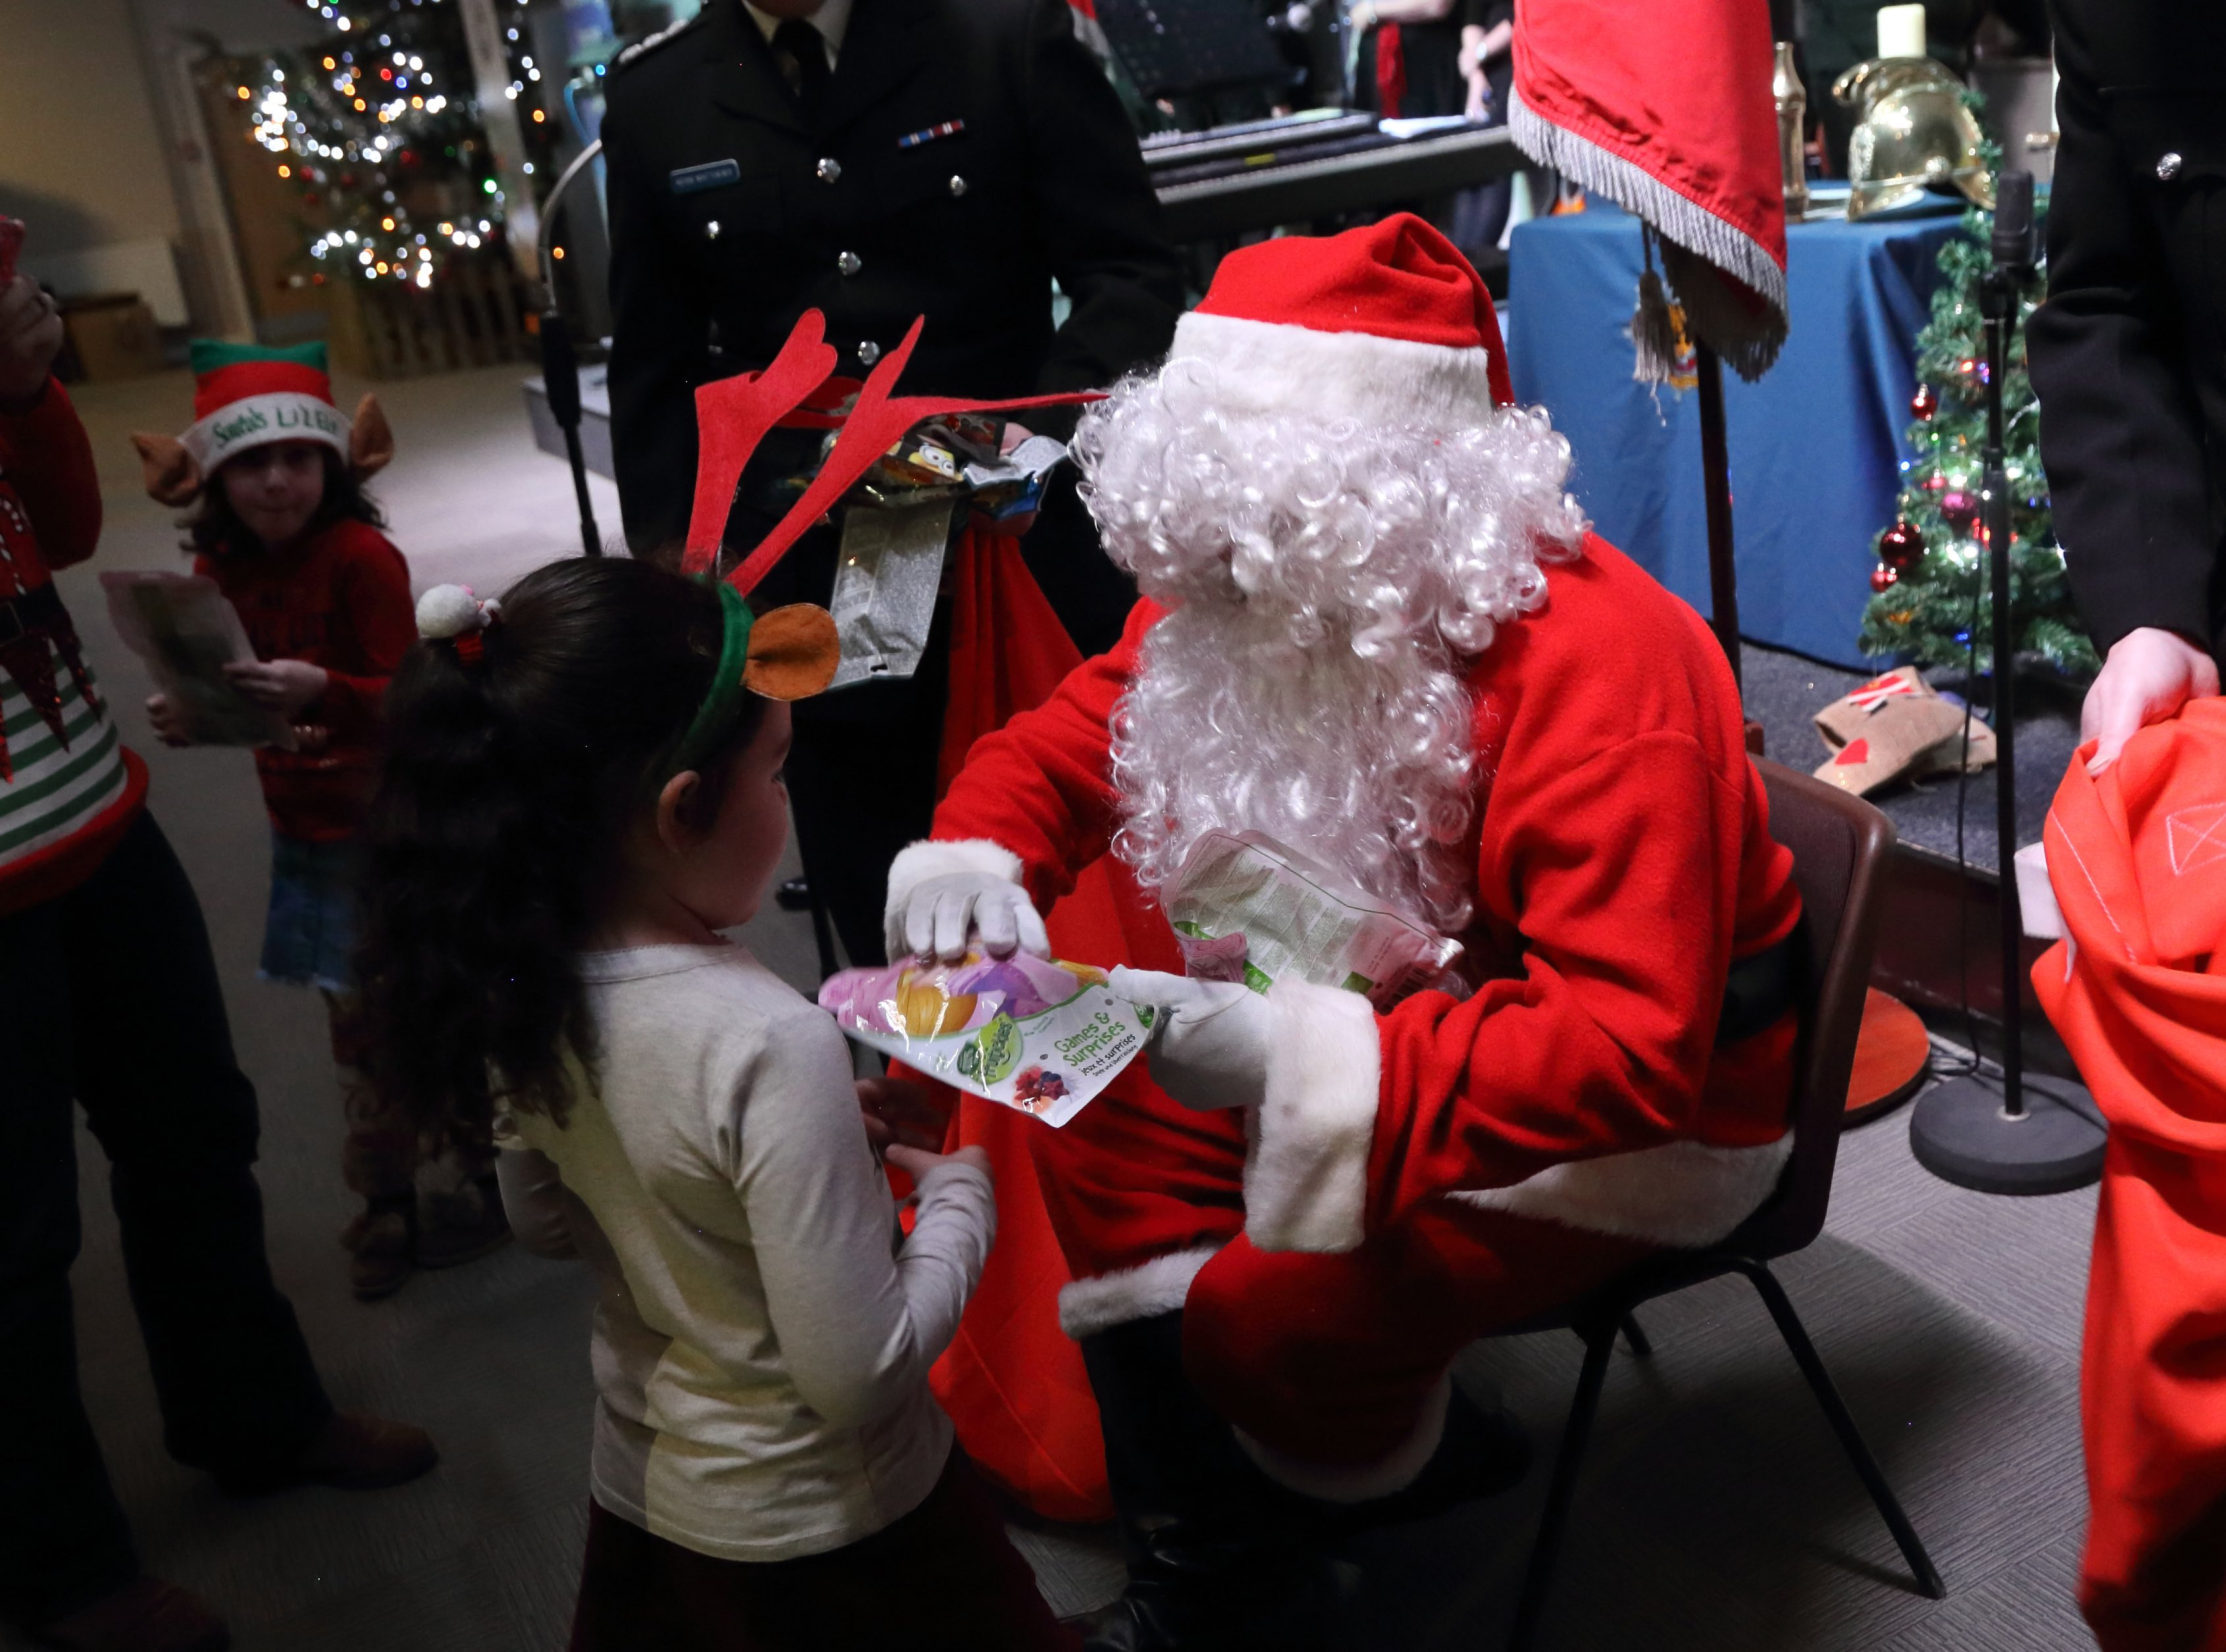 Father Christmas hands out presents